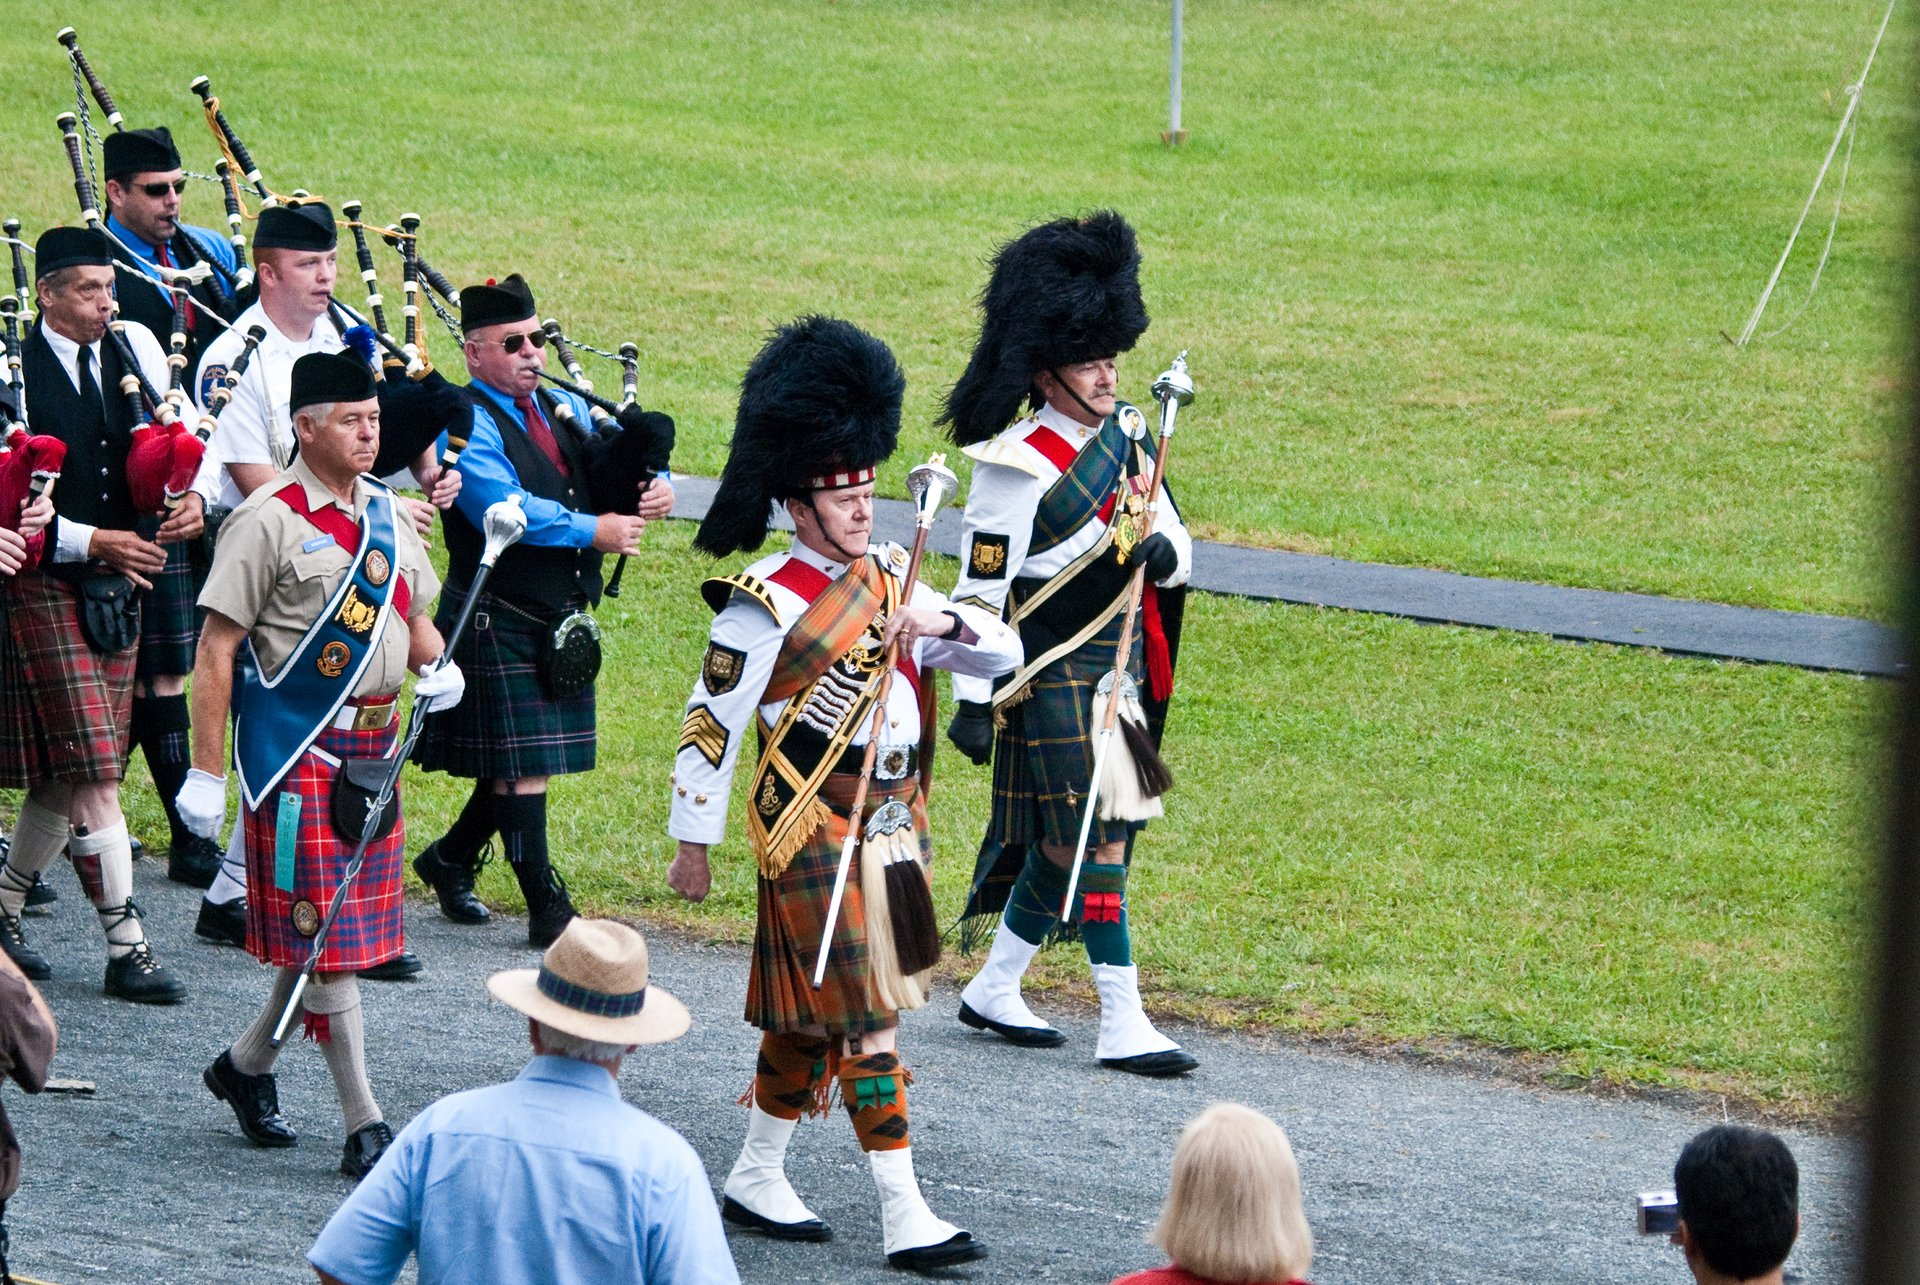 Grandfather Mountain Highland Games in North Carolina - Best Season 2020